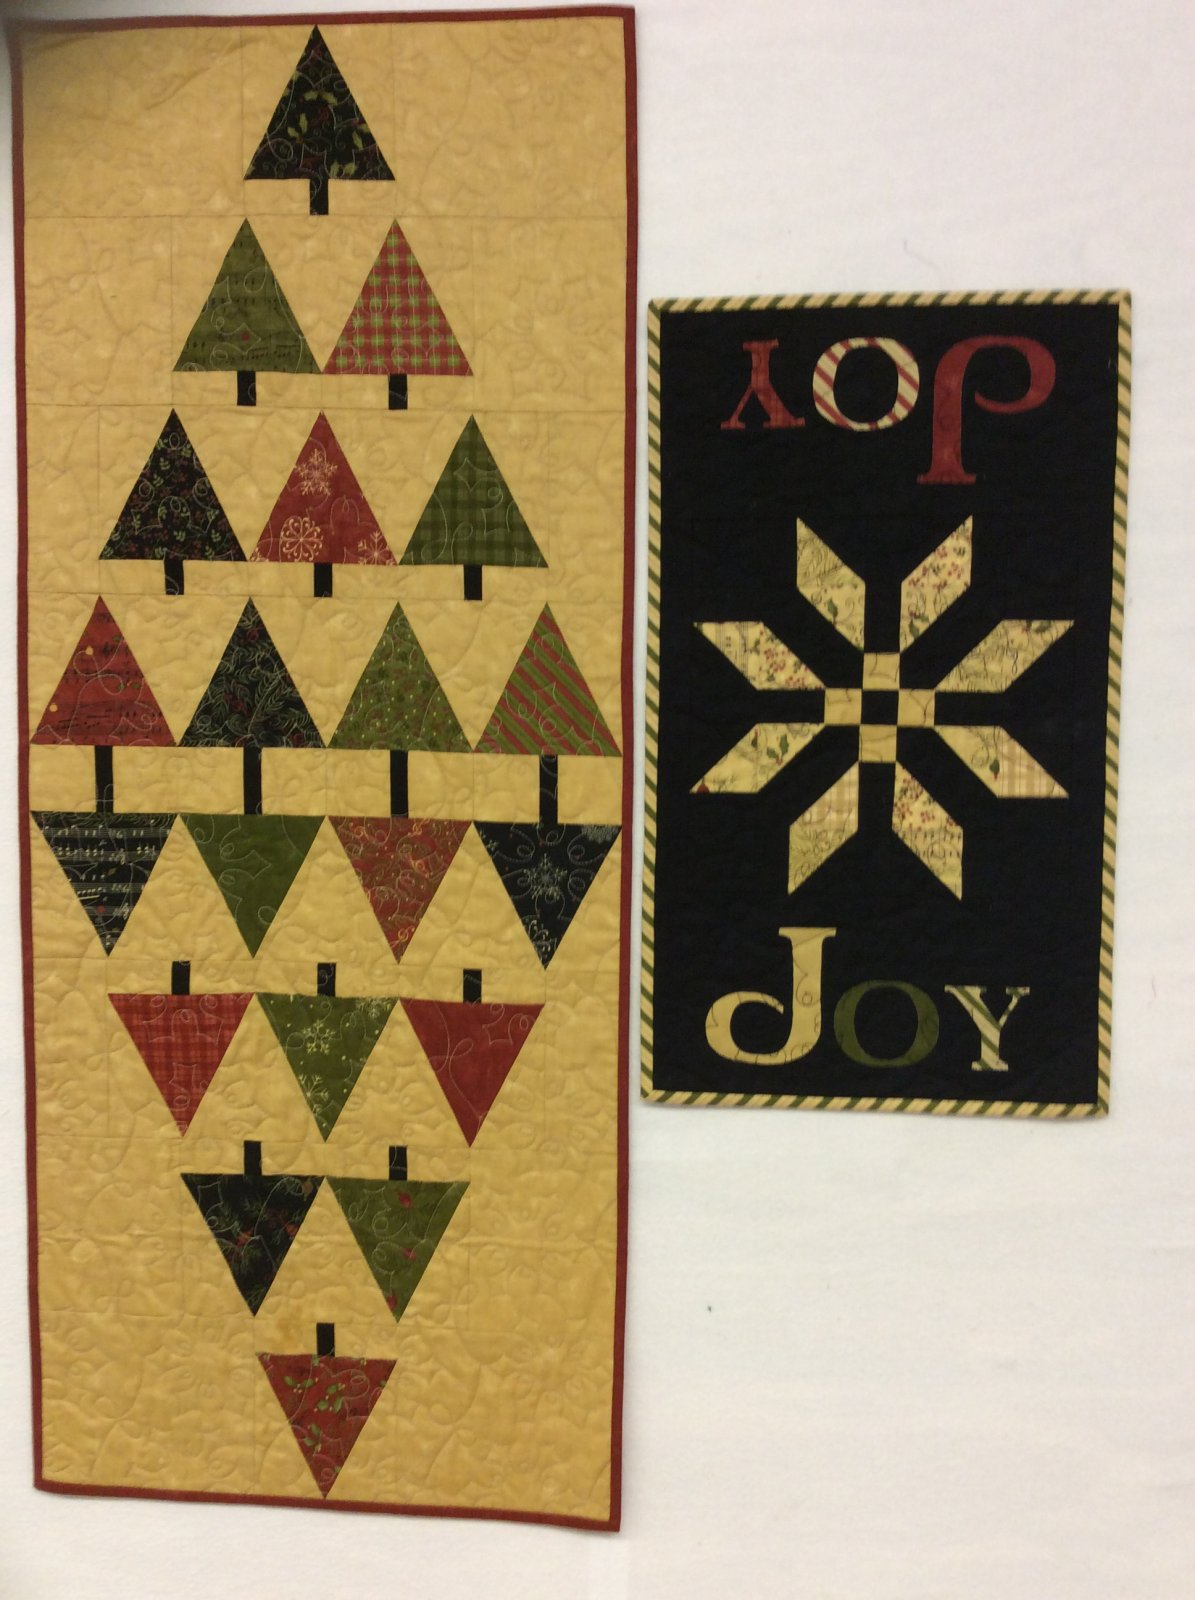 Glad Tidings Runner and Joy Quilt